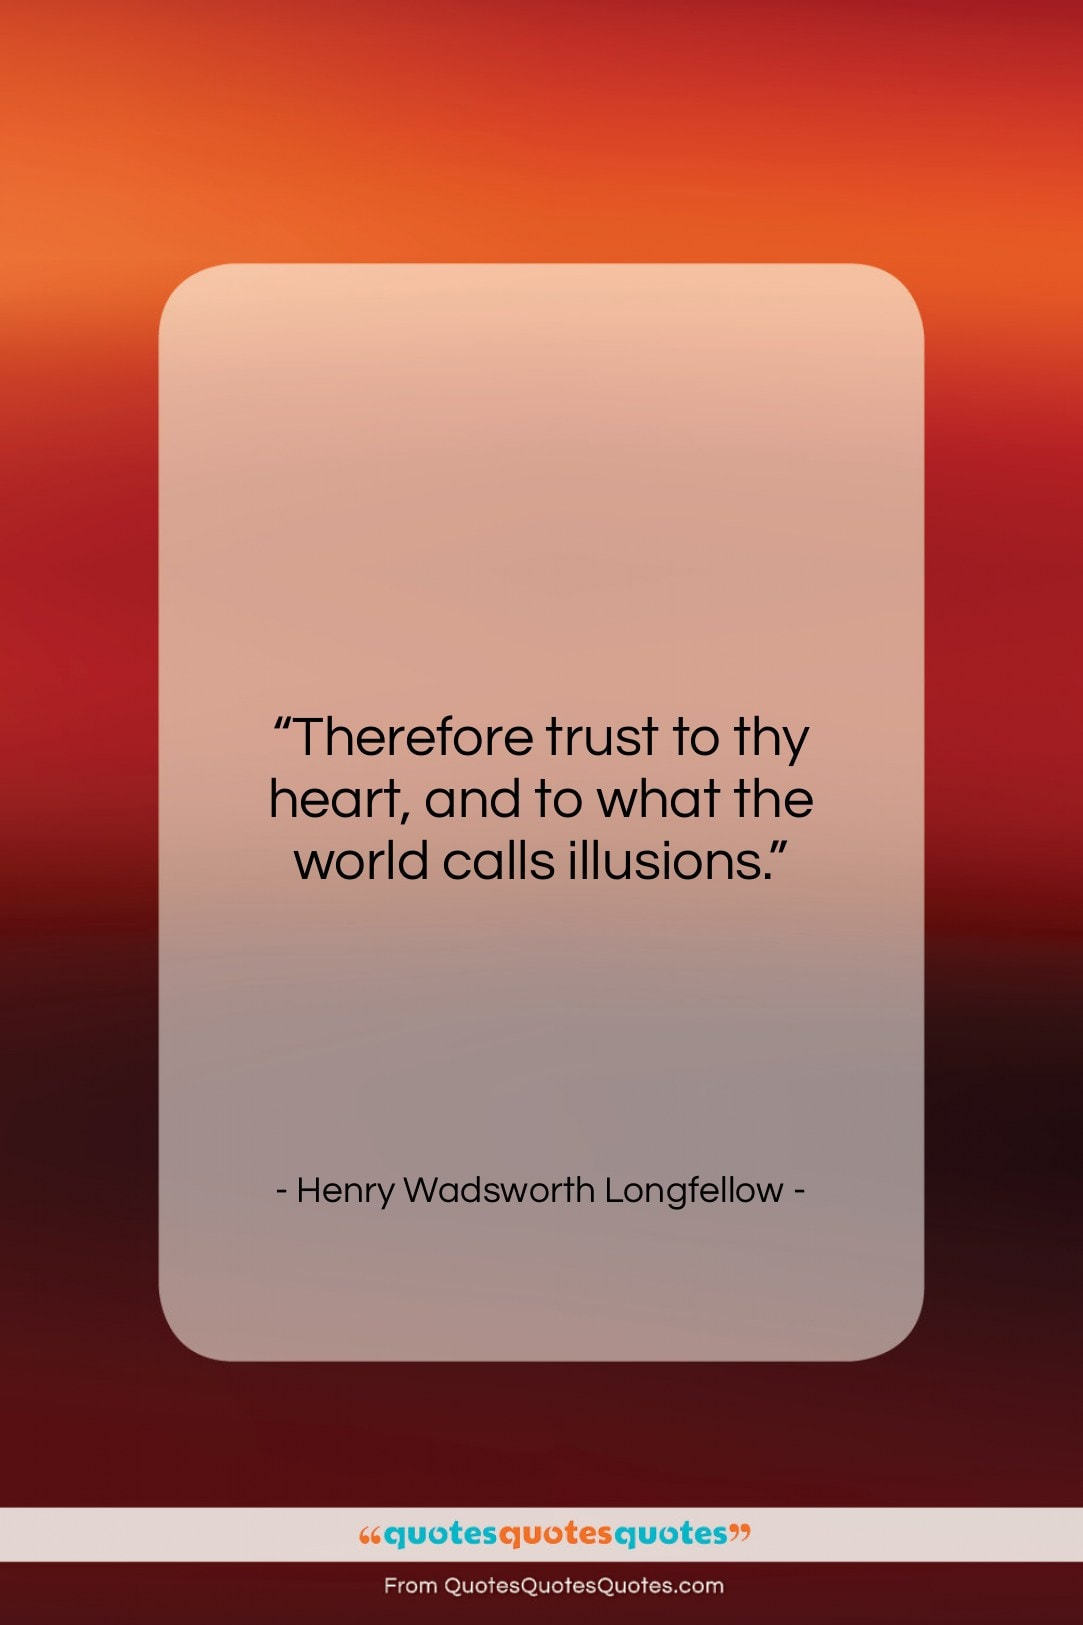 """Henry Wadsworth Longfellow quote: """"Therefore trust to thy heart, and to…""""- at QuotesQuotesQuotes.com"""